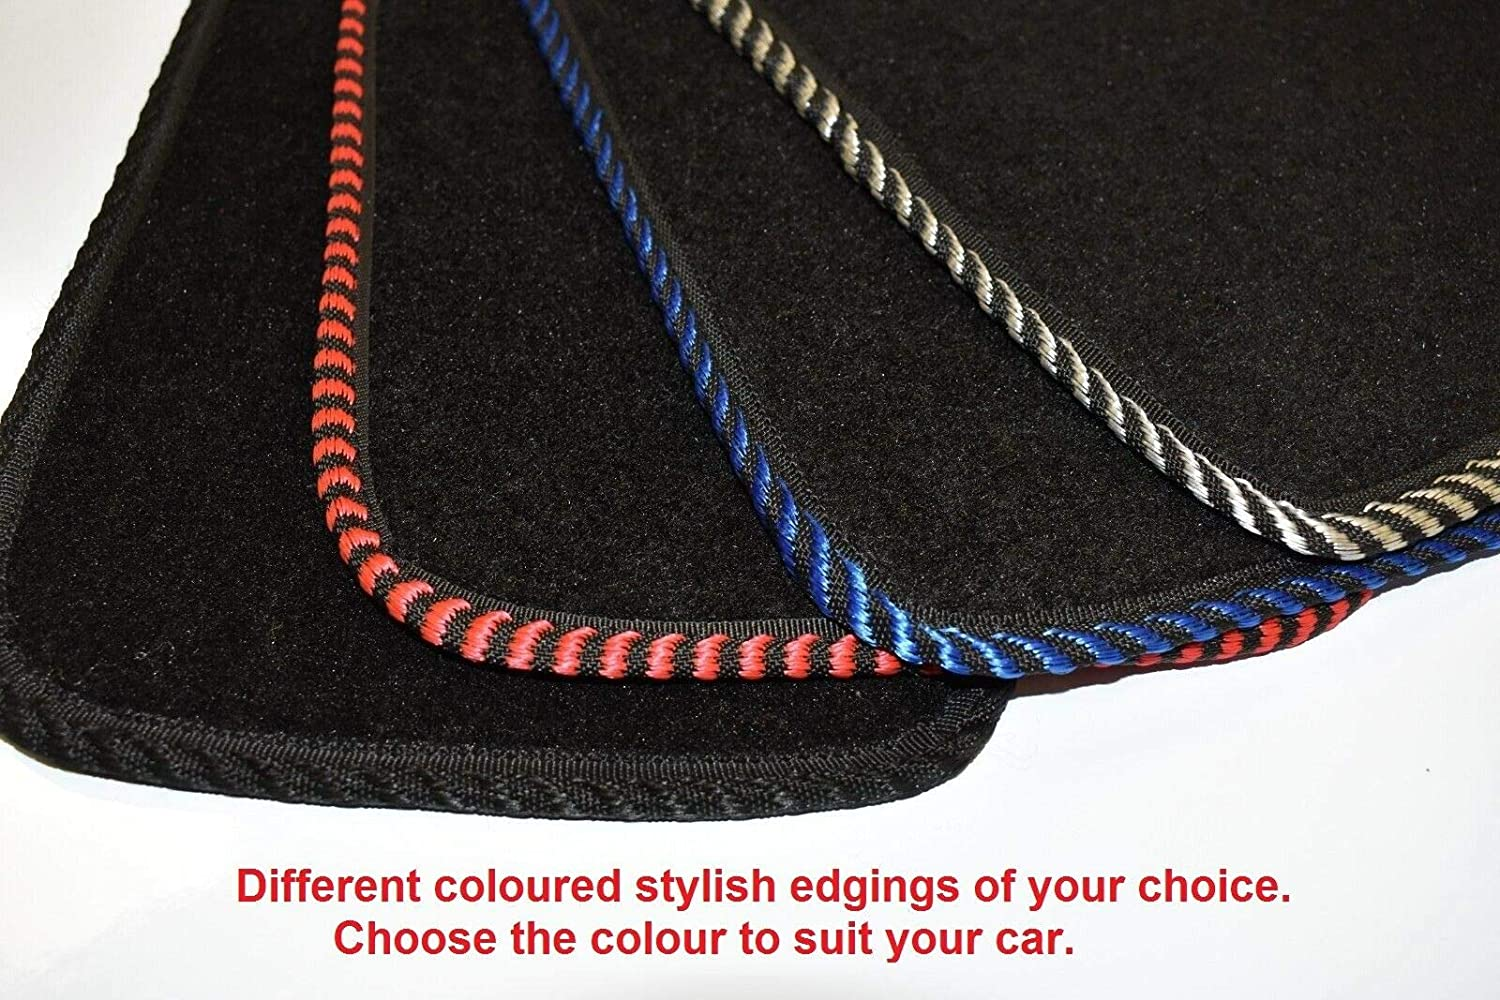 Tailored//Compatible to Fit Mercedes Benz Vito Van From 2003 to 2016 Black Edging Front mat only with Heel Pad with Unique Logos Lusso Floor Carpet Mats for Car